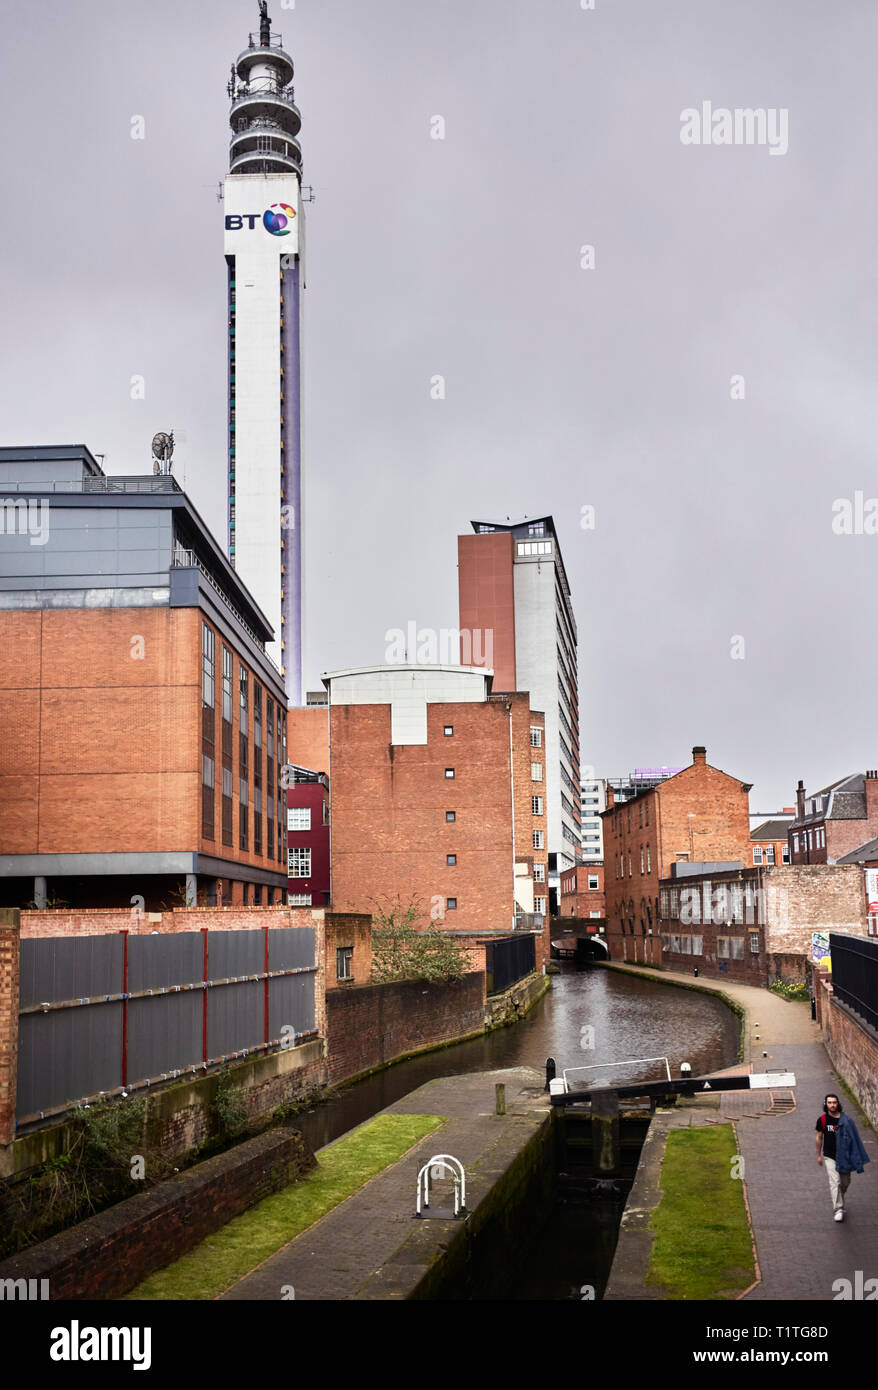 BT Tower and the canal in the centre of Birmingham - Stock Image